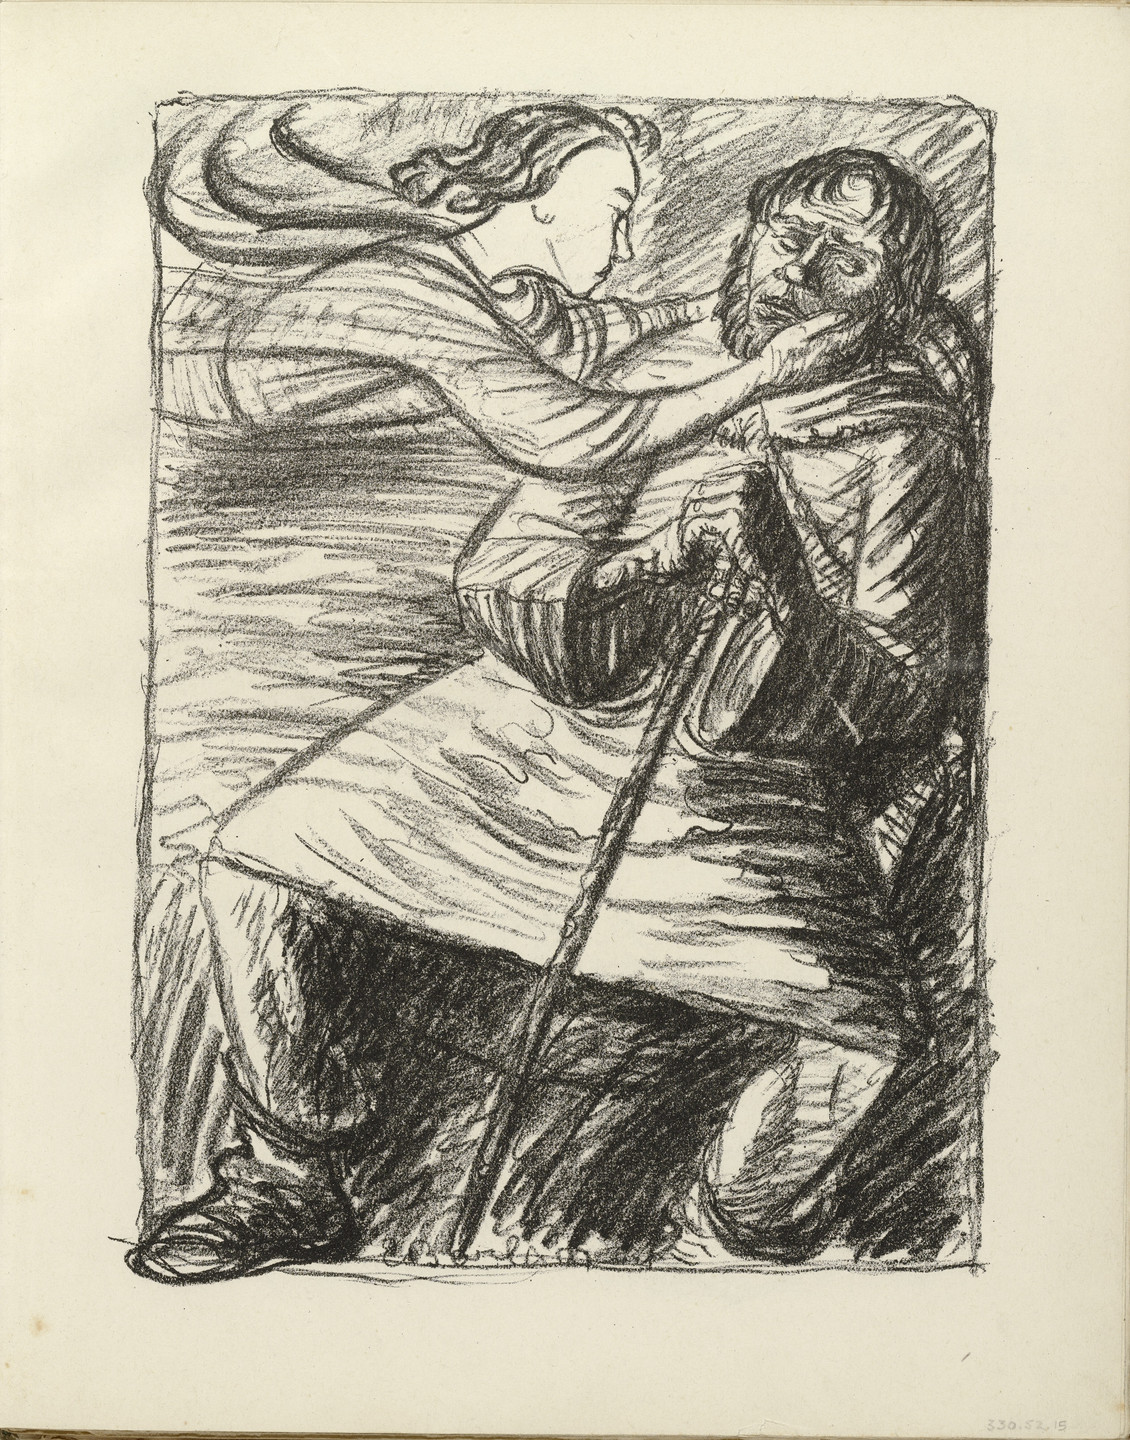 Ernst Barlach. The Weary One (Der Müde) (plate, folio 9) from the periodical Der Bildermann, vol. 1, no. 4 (May 1916). 1916